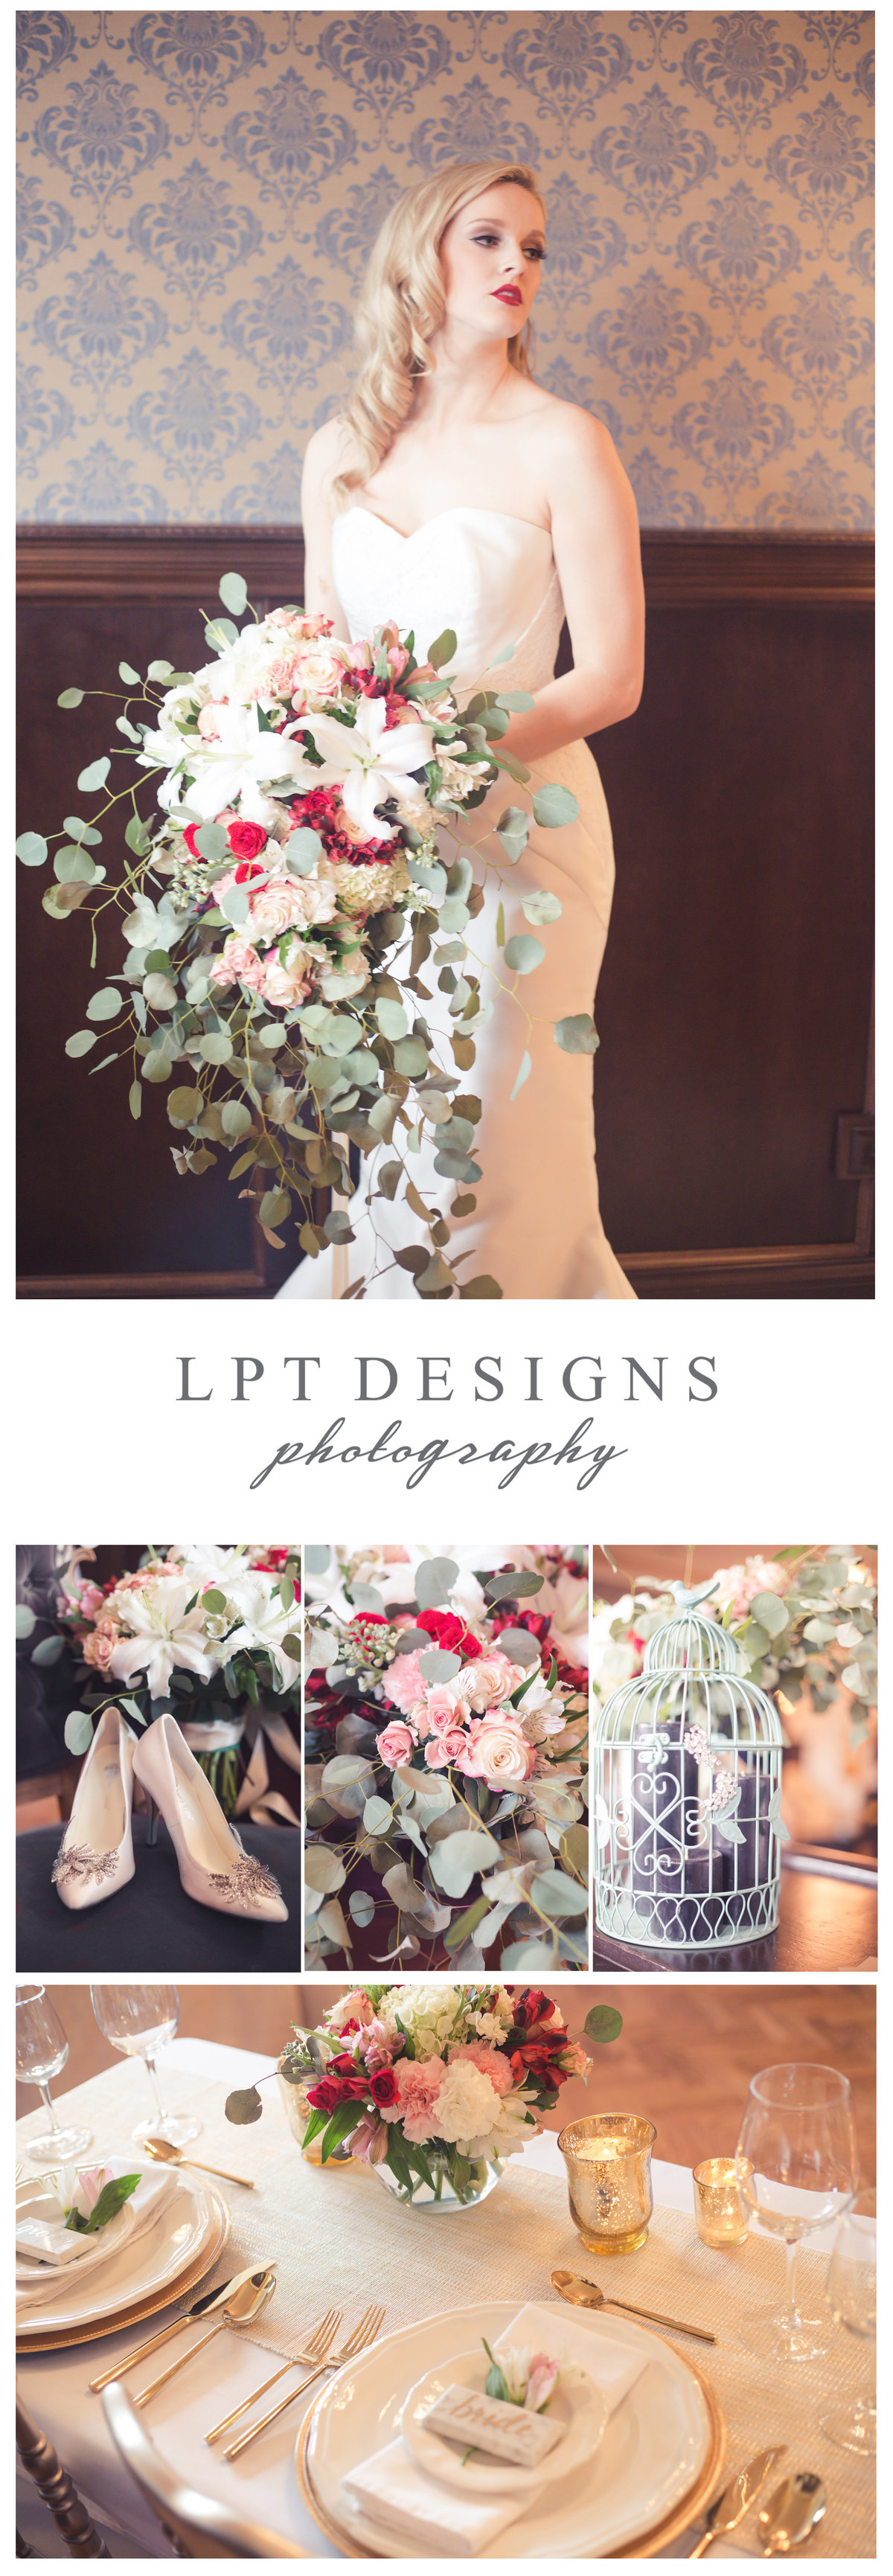 LPT Designs Photography Lydia Thrift Gadsden Alabama Boutique Wedding Photographer New Web 1